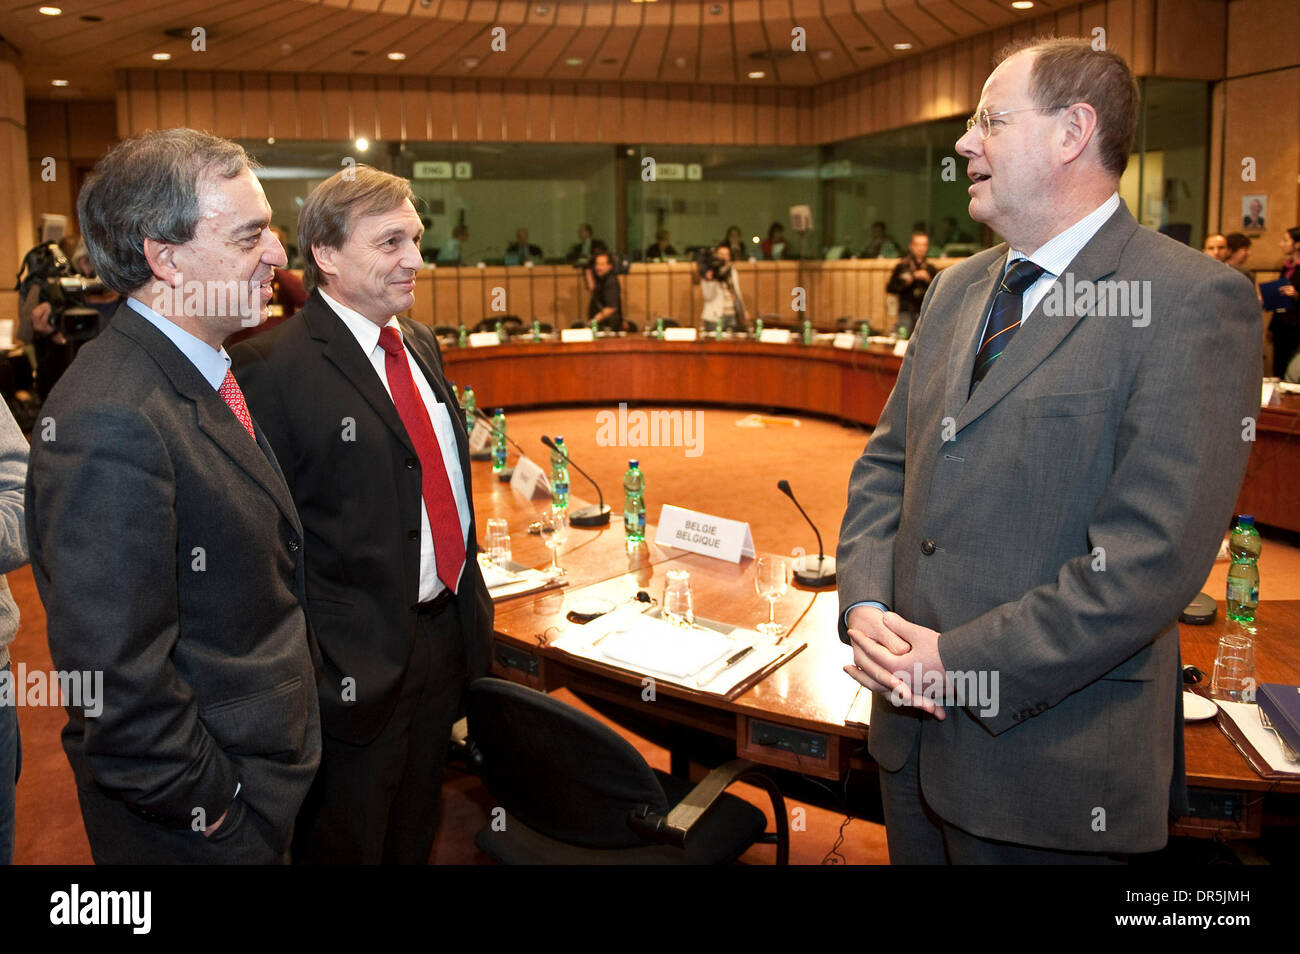 Jan 19, 2009 - Brussels, Belgium - Germany's Finance Minister PEER STEINBRUECK (R) chats with his Cyprus counterpart CHARILAOS STAVRAKIS and Luxembourg counterpart JEANNOT KRECKE (C) at the start of a Eurozone Finance ministers meeting in Brussels (Credit Image: © Wiktor Dabkowski/ZUMA Press) - Stock Image